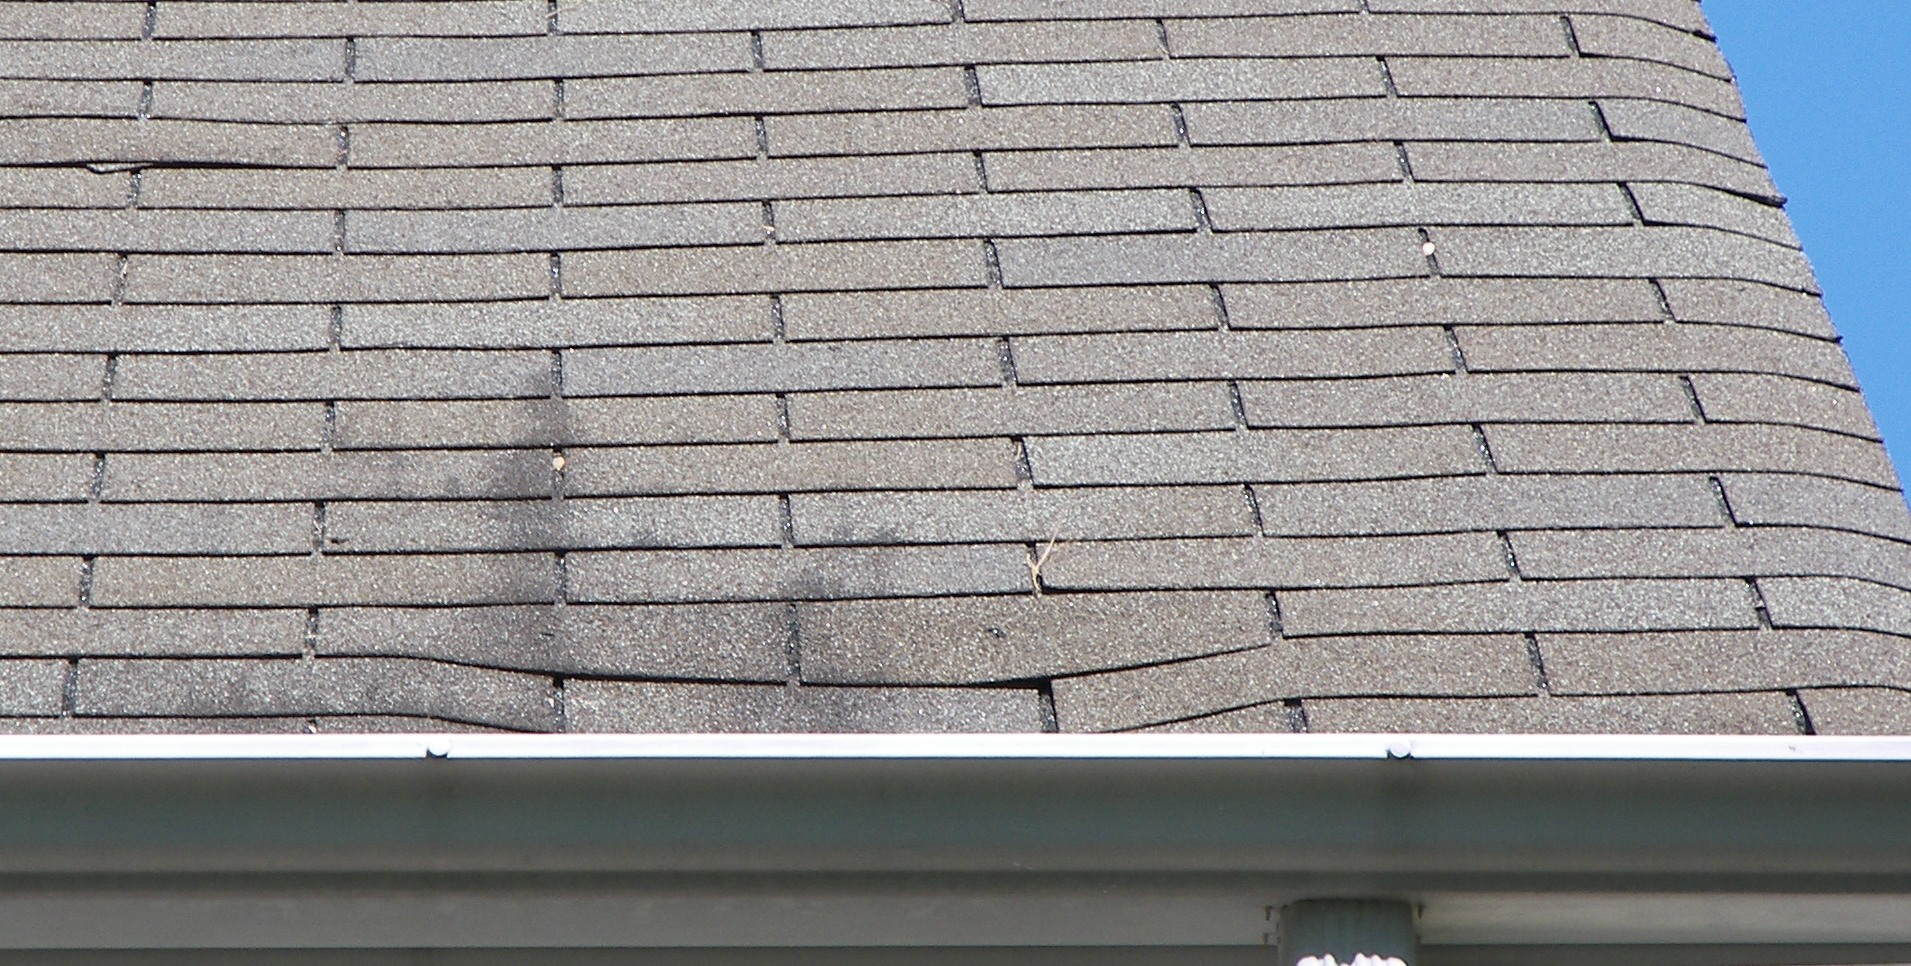 three tab shingles caving in failing roof substrate